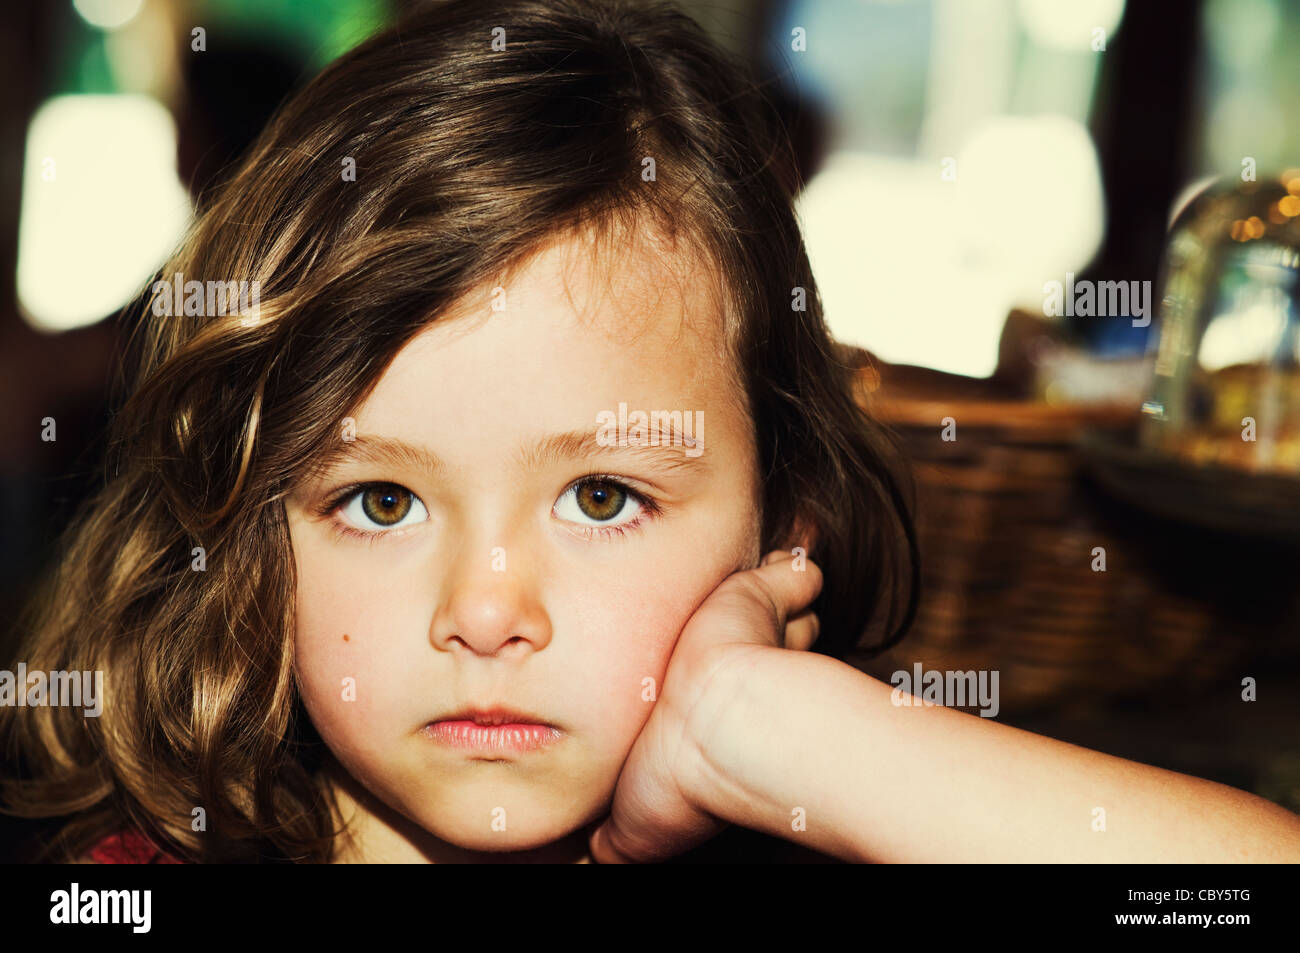 Cute Portrait Of A Young 5 Year Old Brunette Girl Pouting